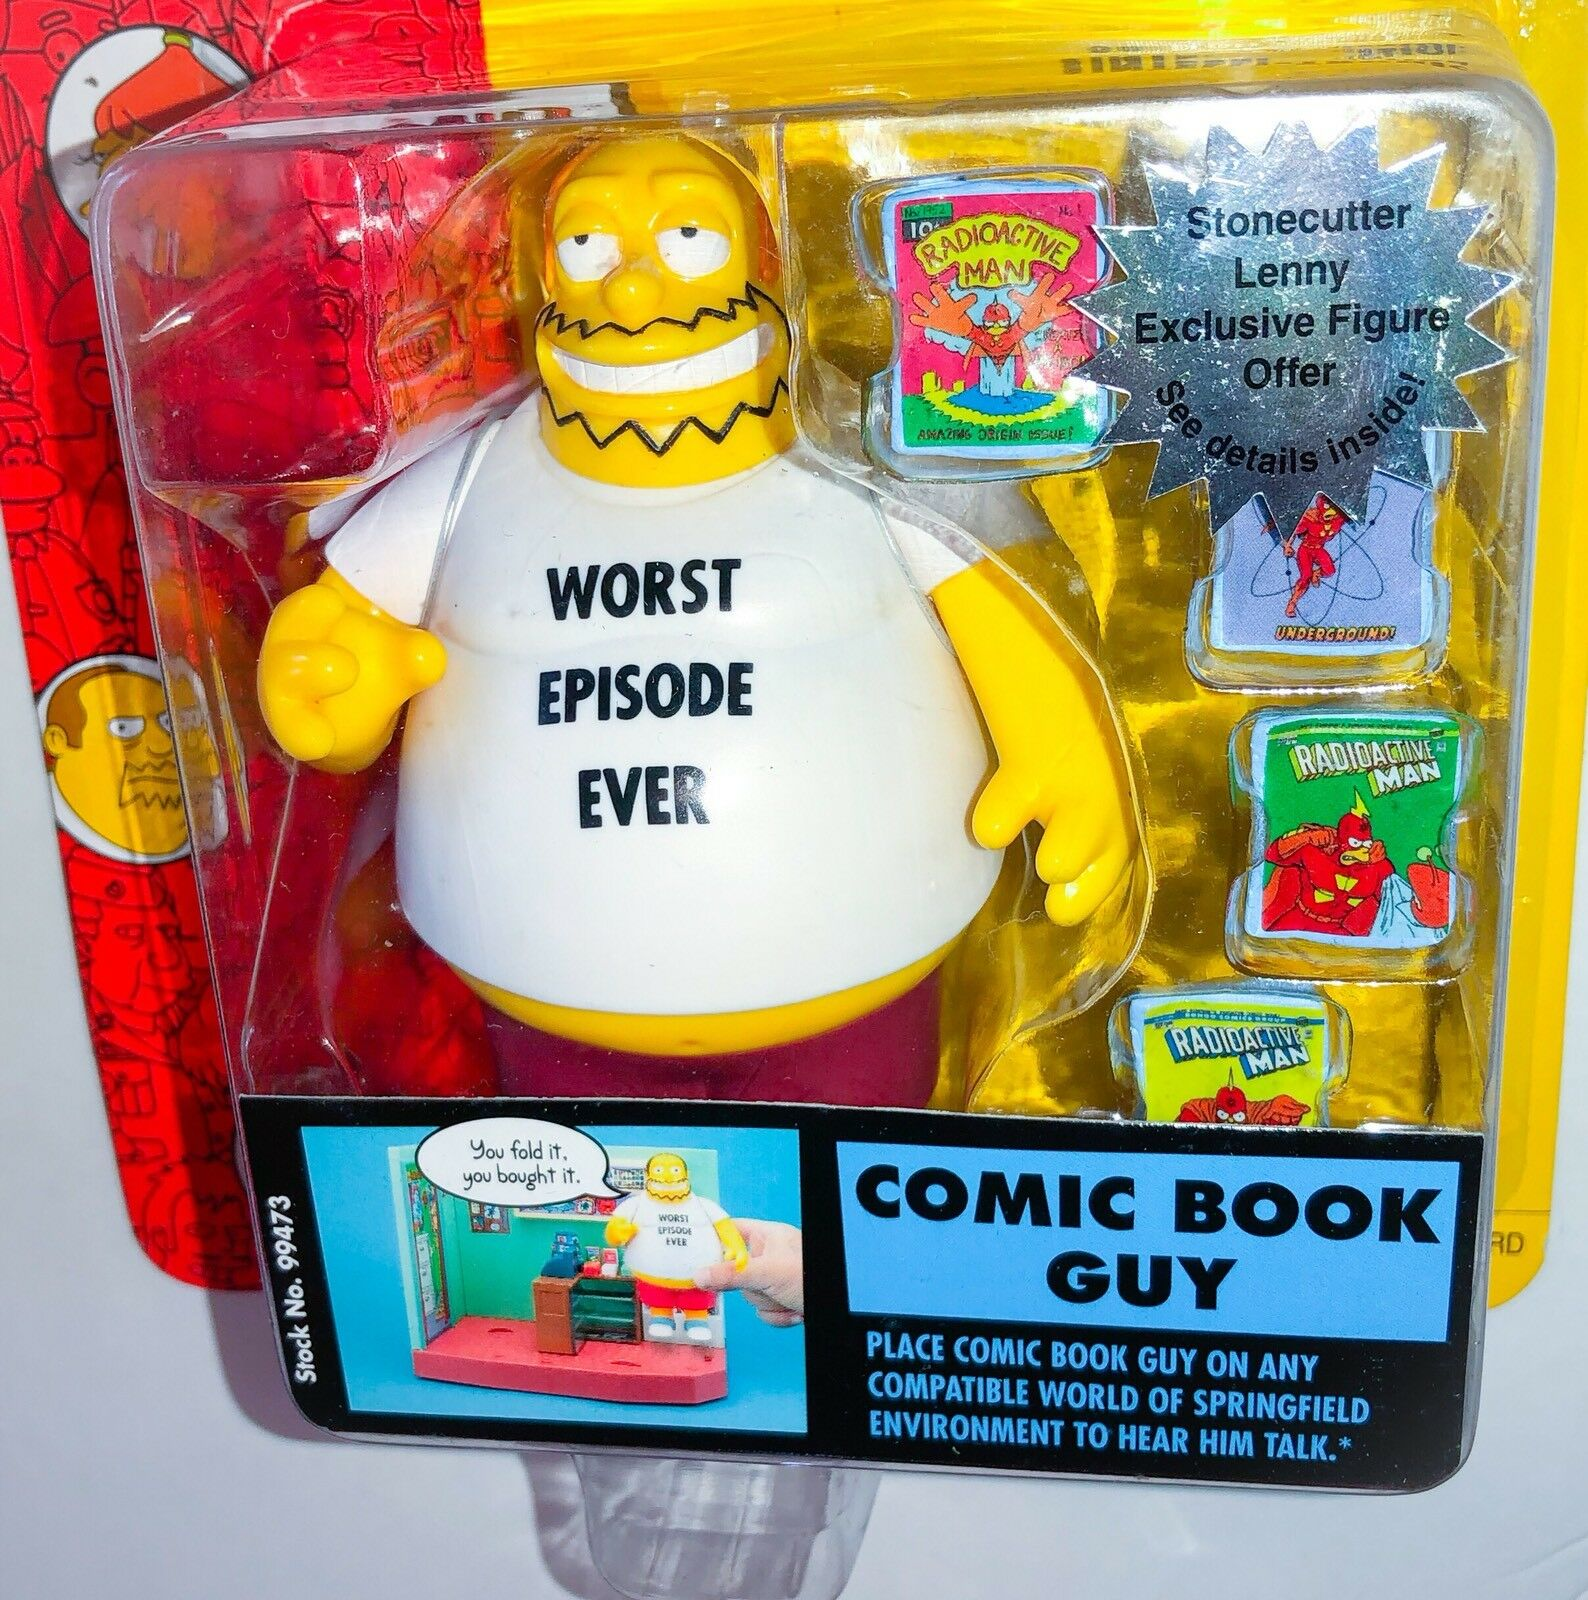 COMIC BOOK GUY White Shirt Simpsons World of Springfield WOS Figure Series 15